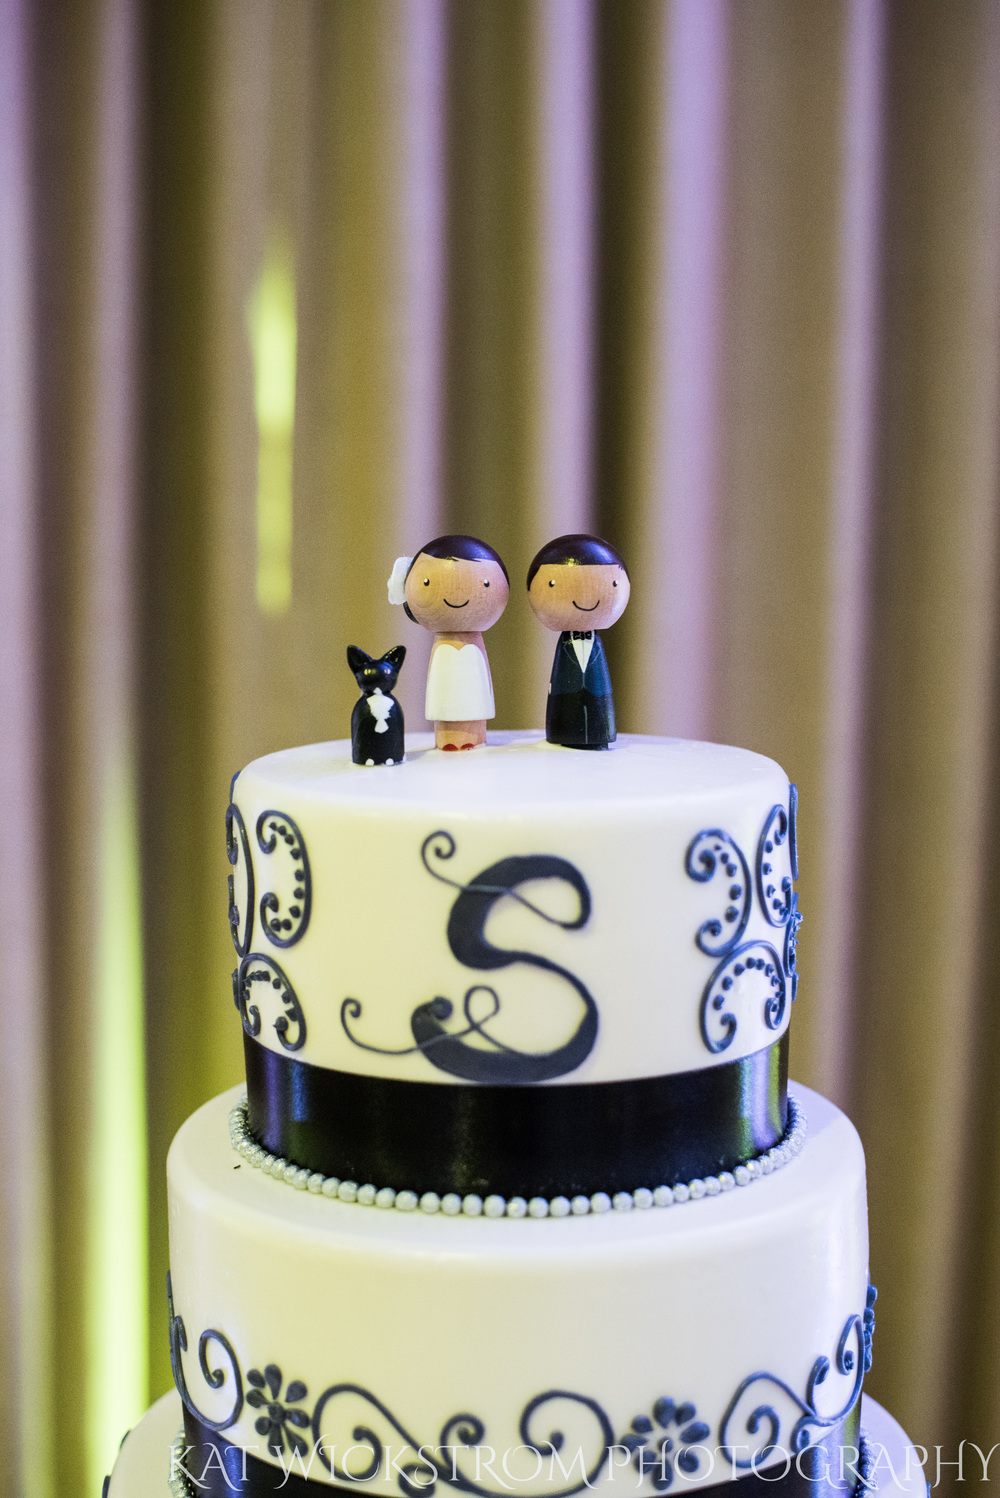 How adorable are these cake toppers made of wood people?!